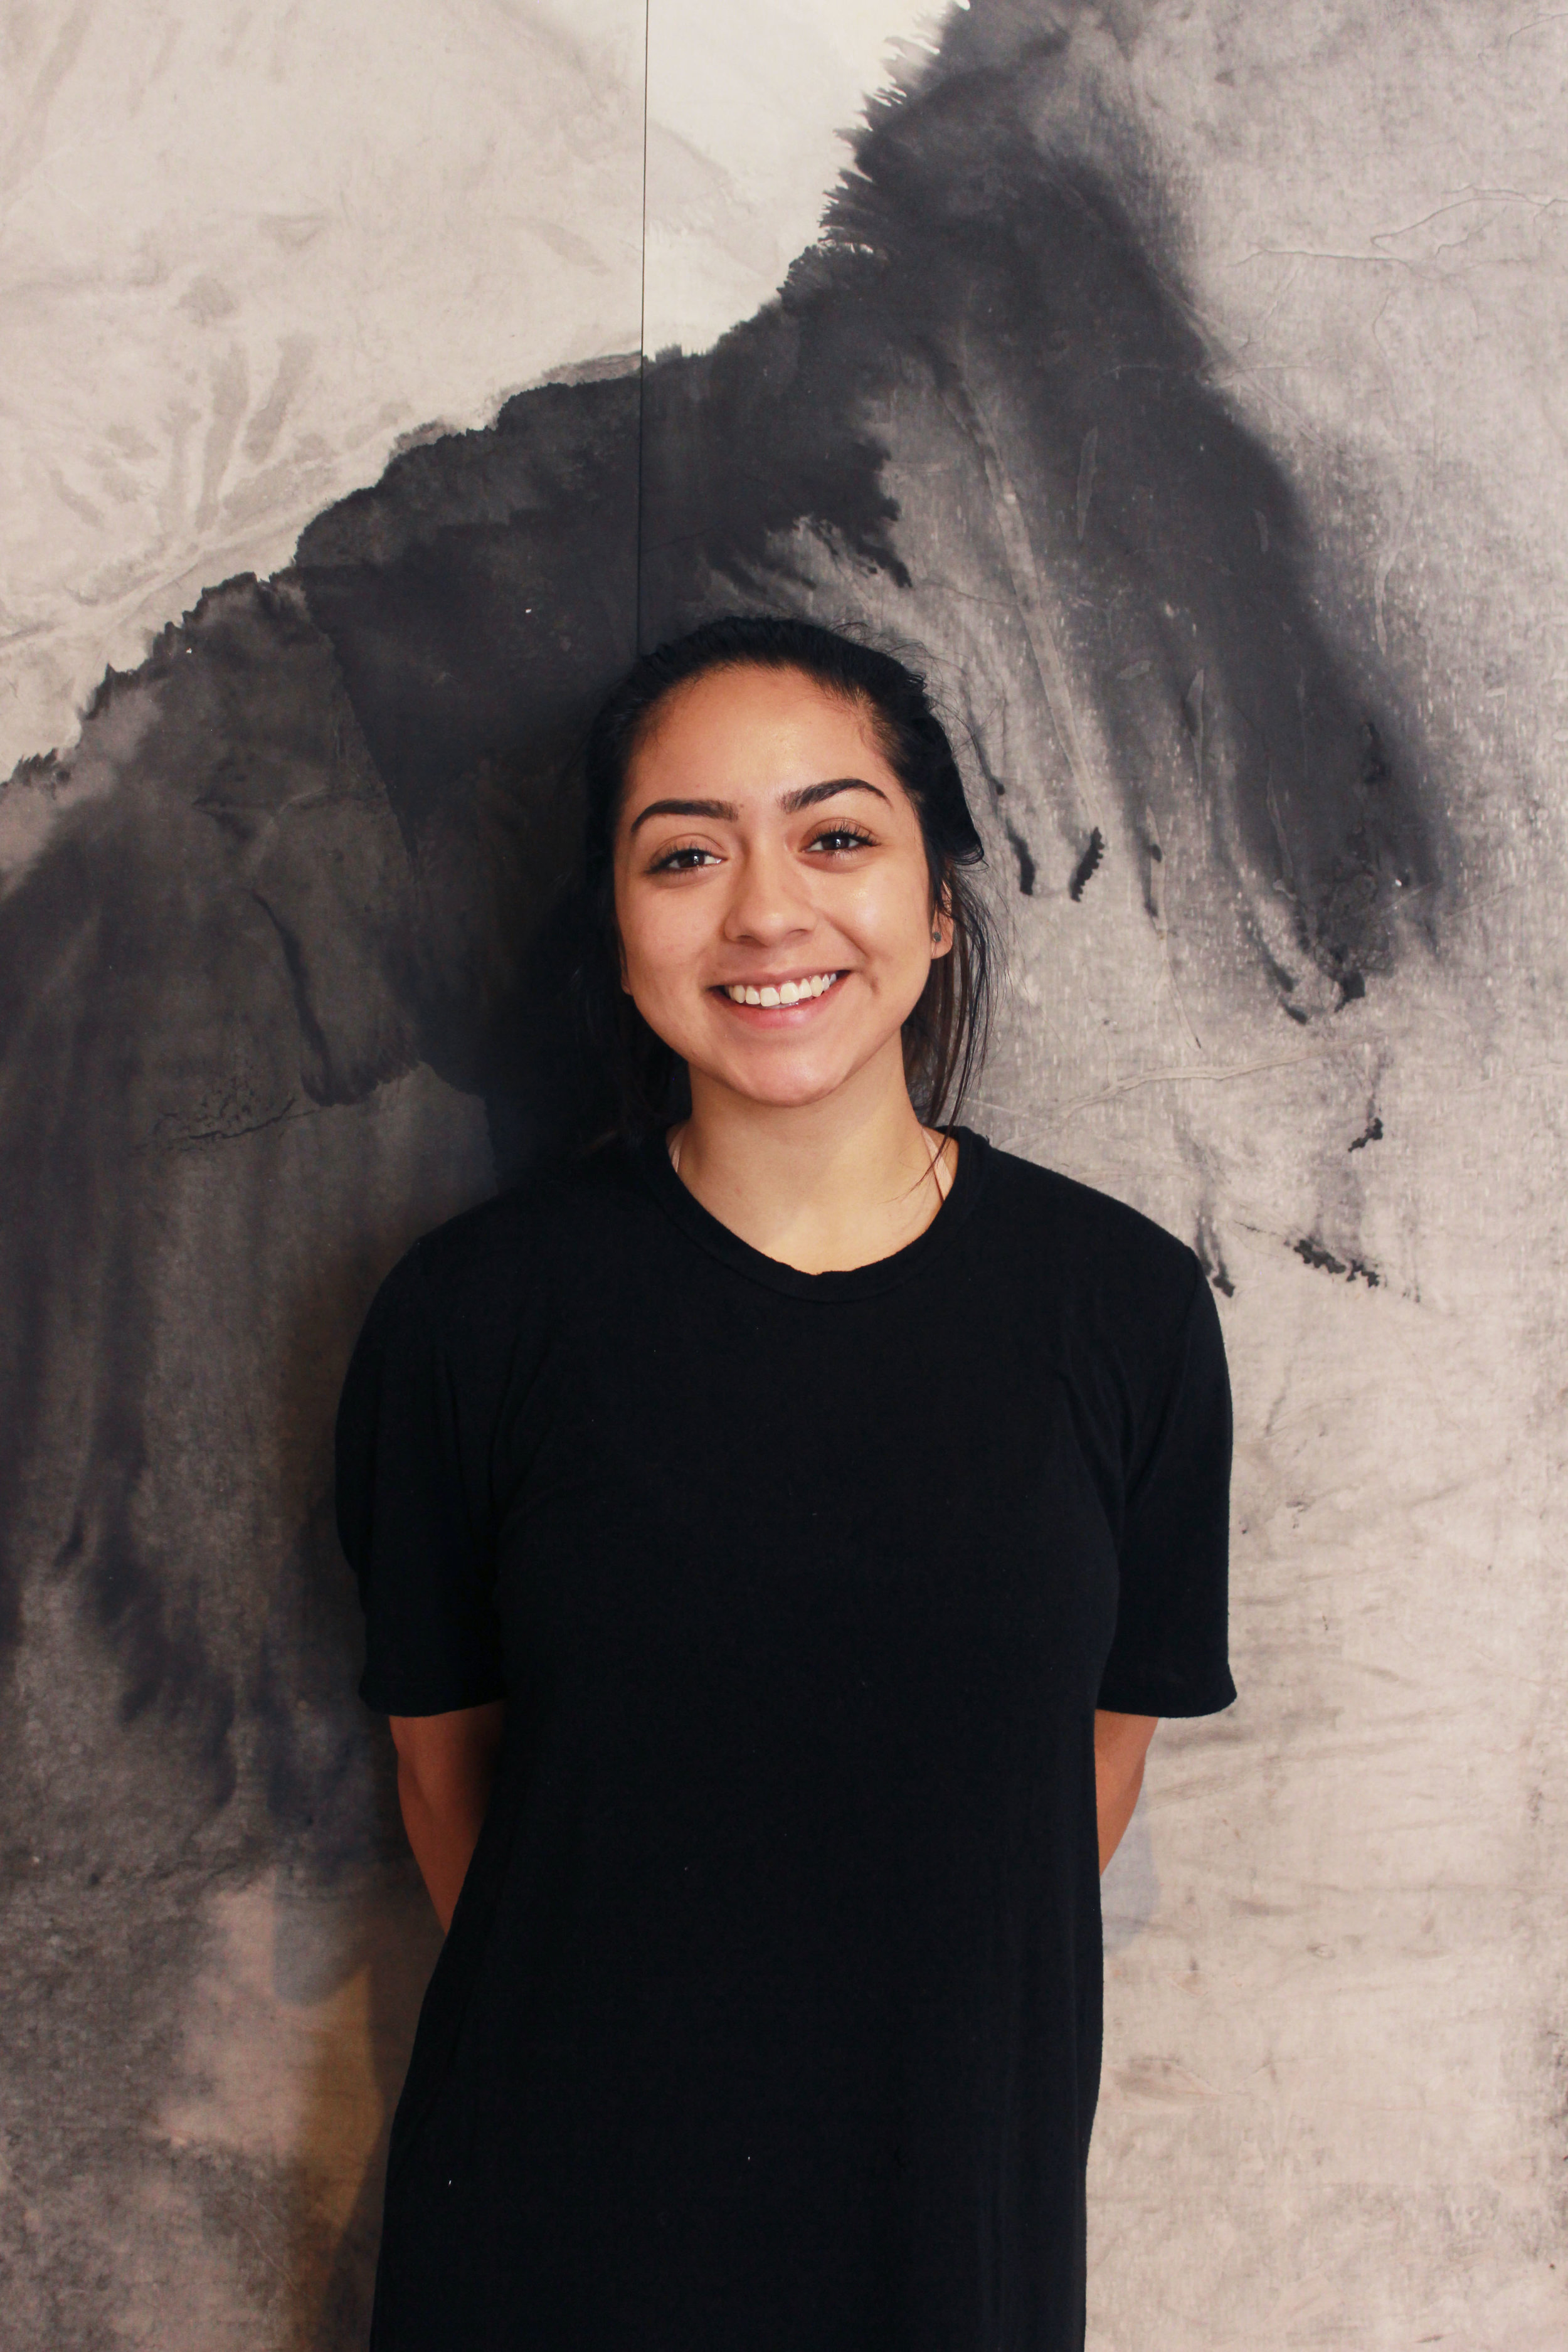 Hi, My name is Alejandra and I am the first of my family to graduate High School and attend a four year University. I'm currently a Sophomore Communication/ Media studies major here at Dominican University and I am very excited for what's to come! Follow me along this journey of college and life.